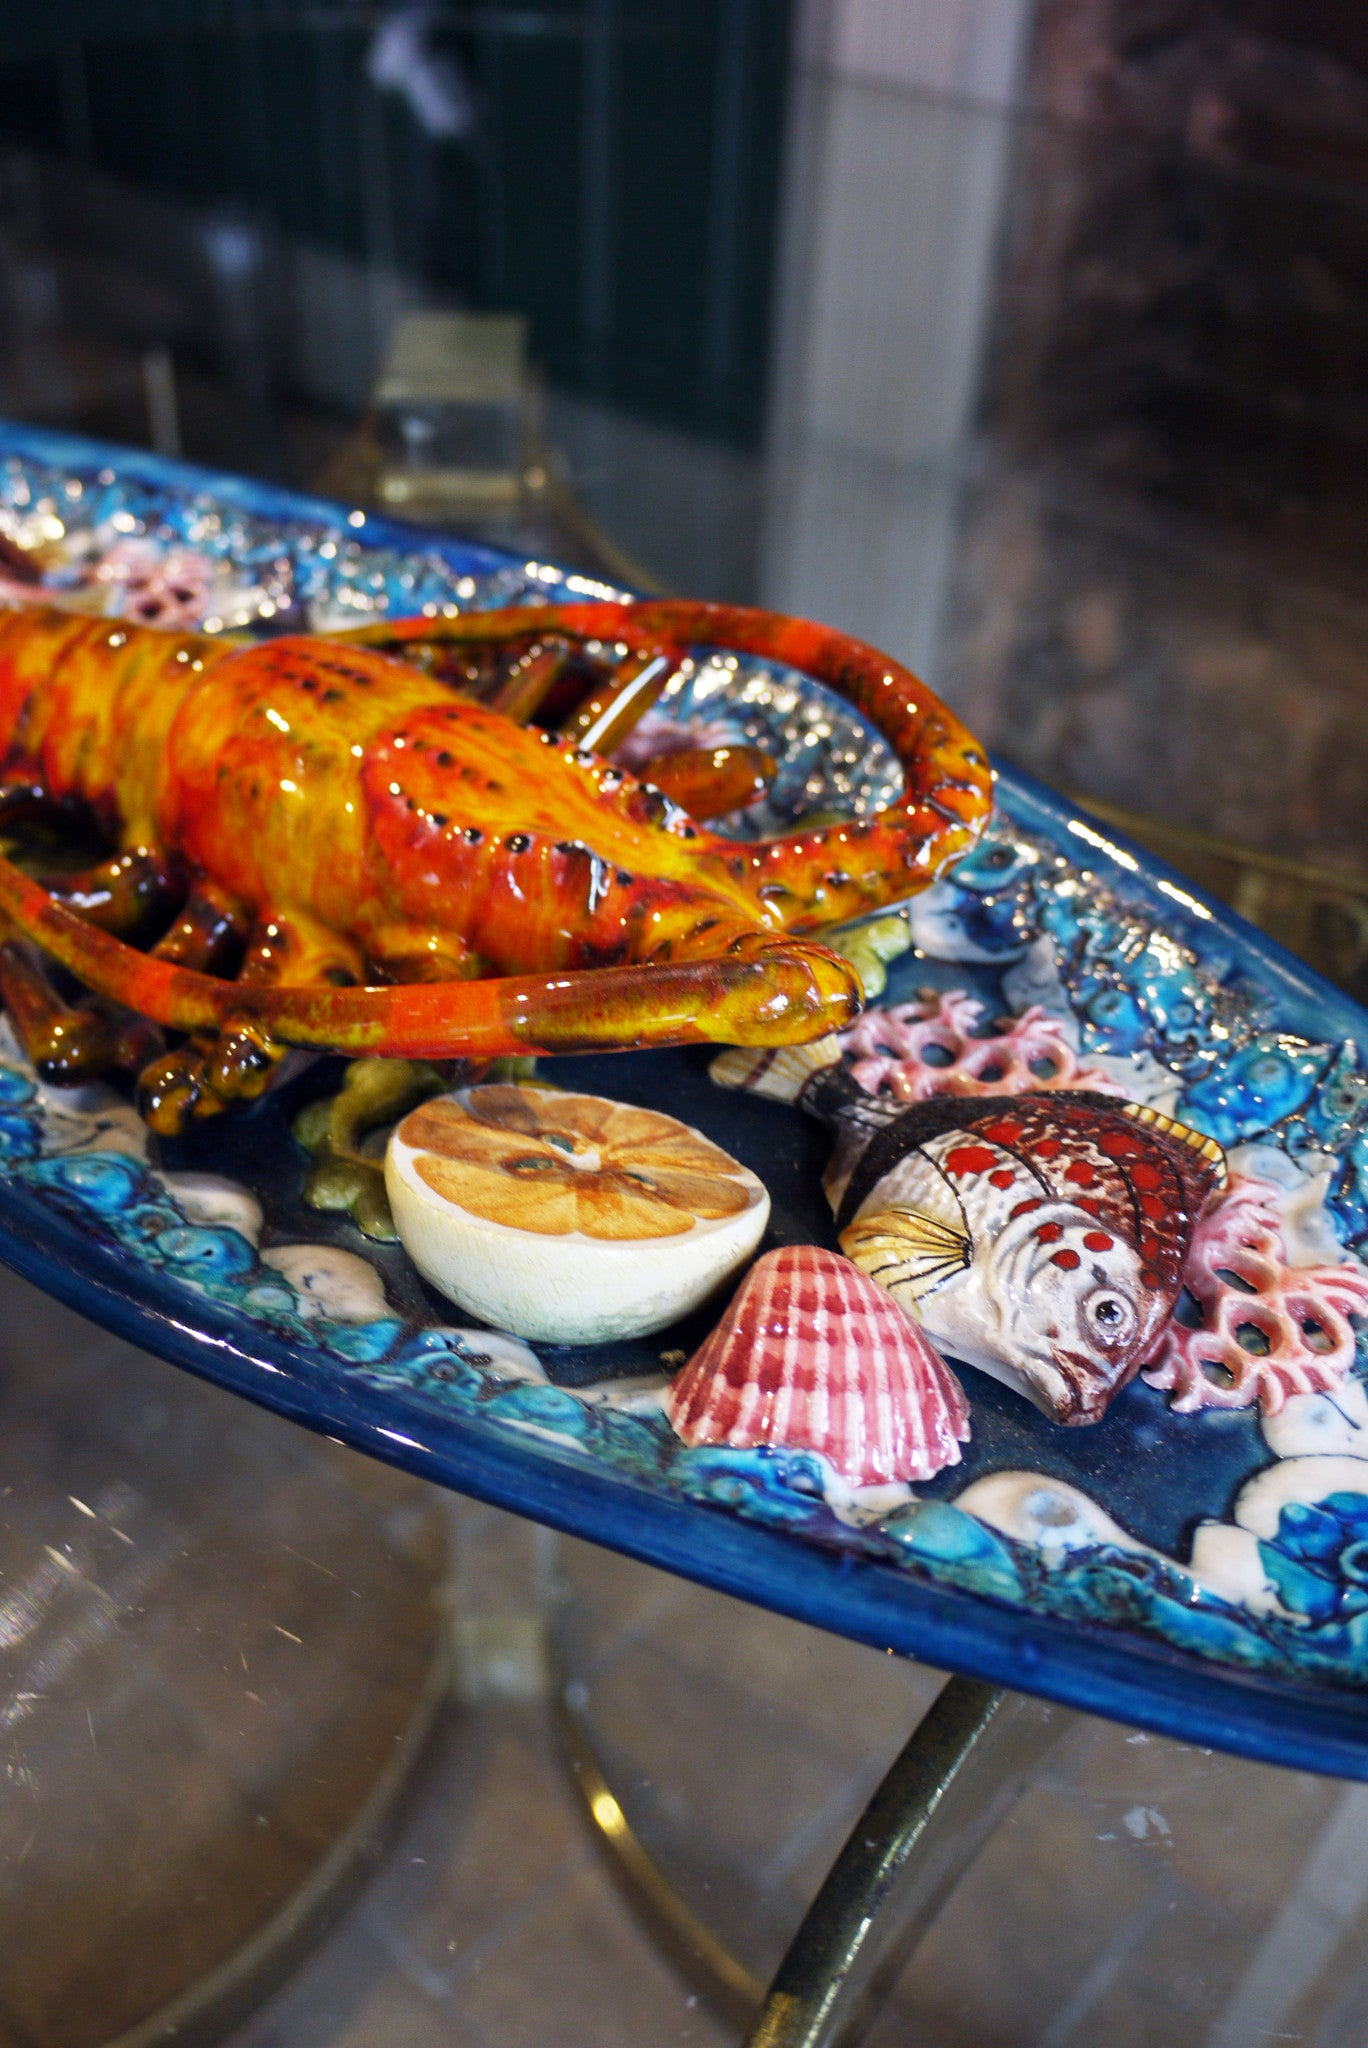 X Ceramic Lobster Plate